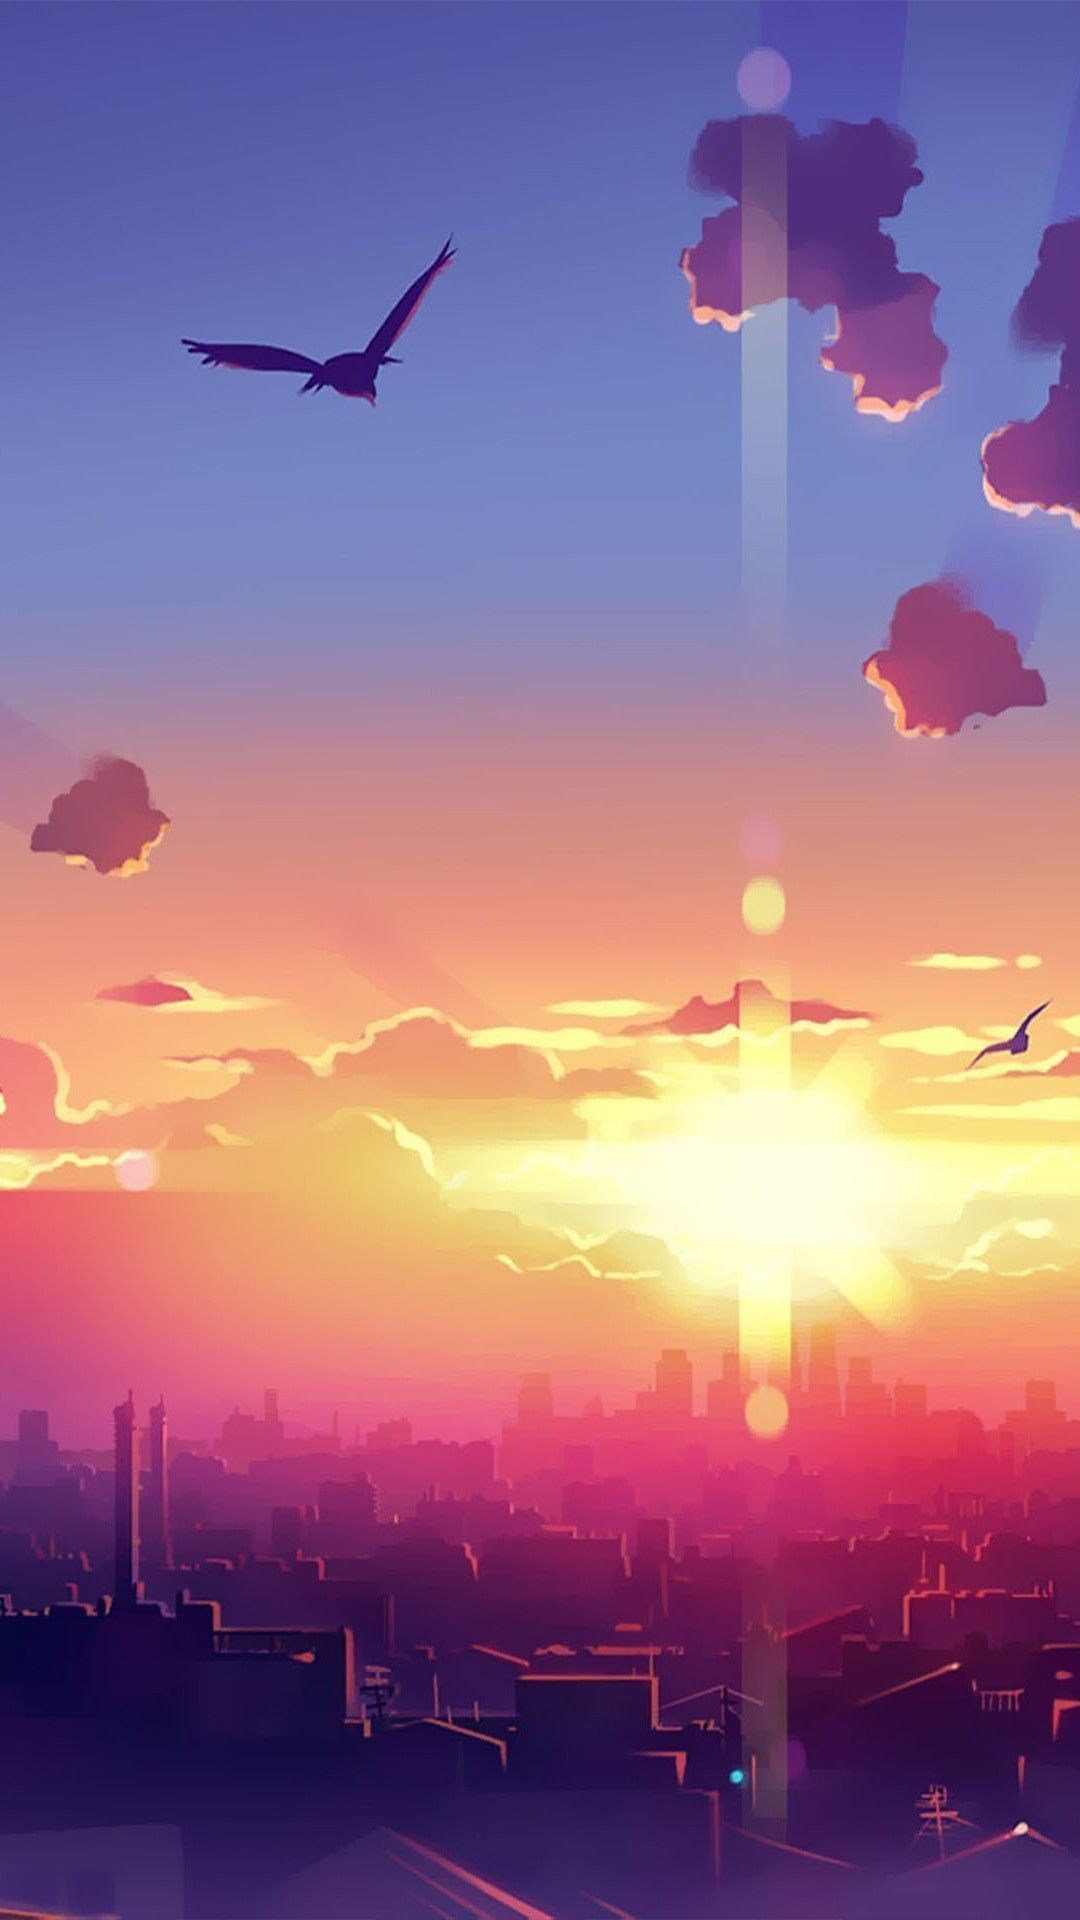 Best wallpapers sunrise wallpapers phone wallpapers in - Anime phone wallpaper hd ...